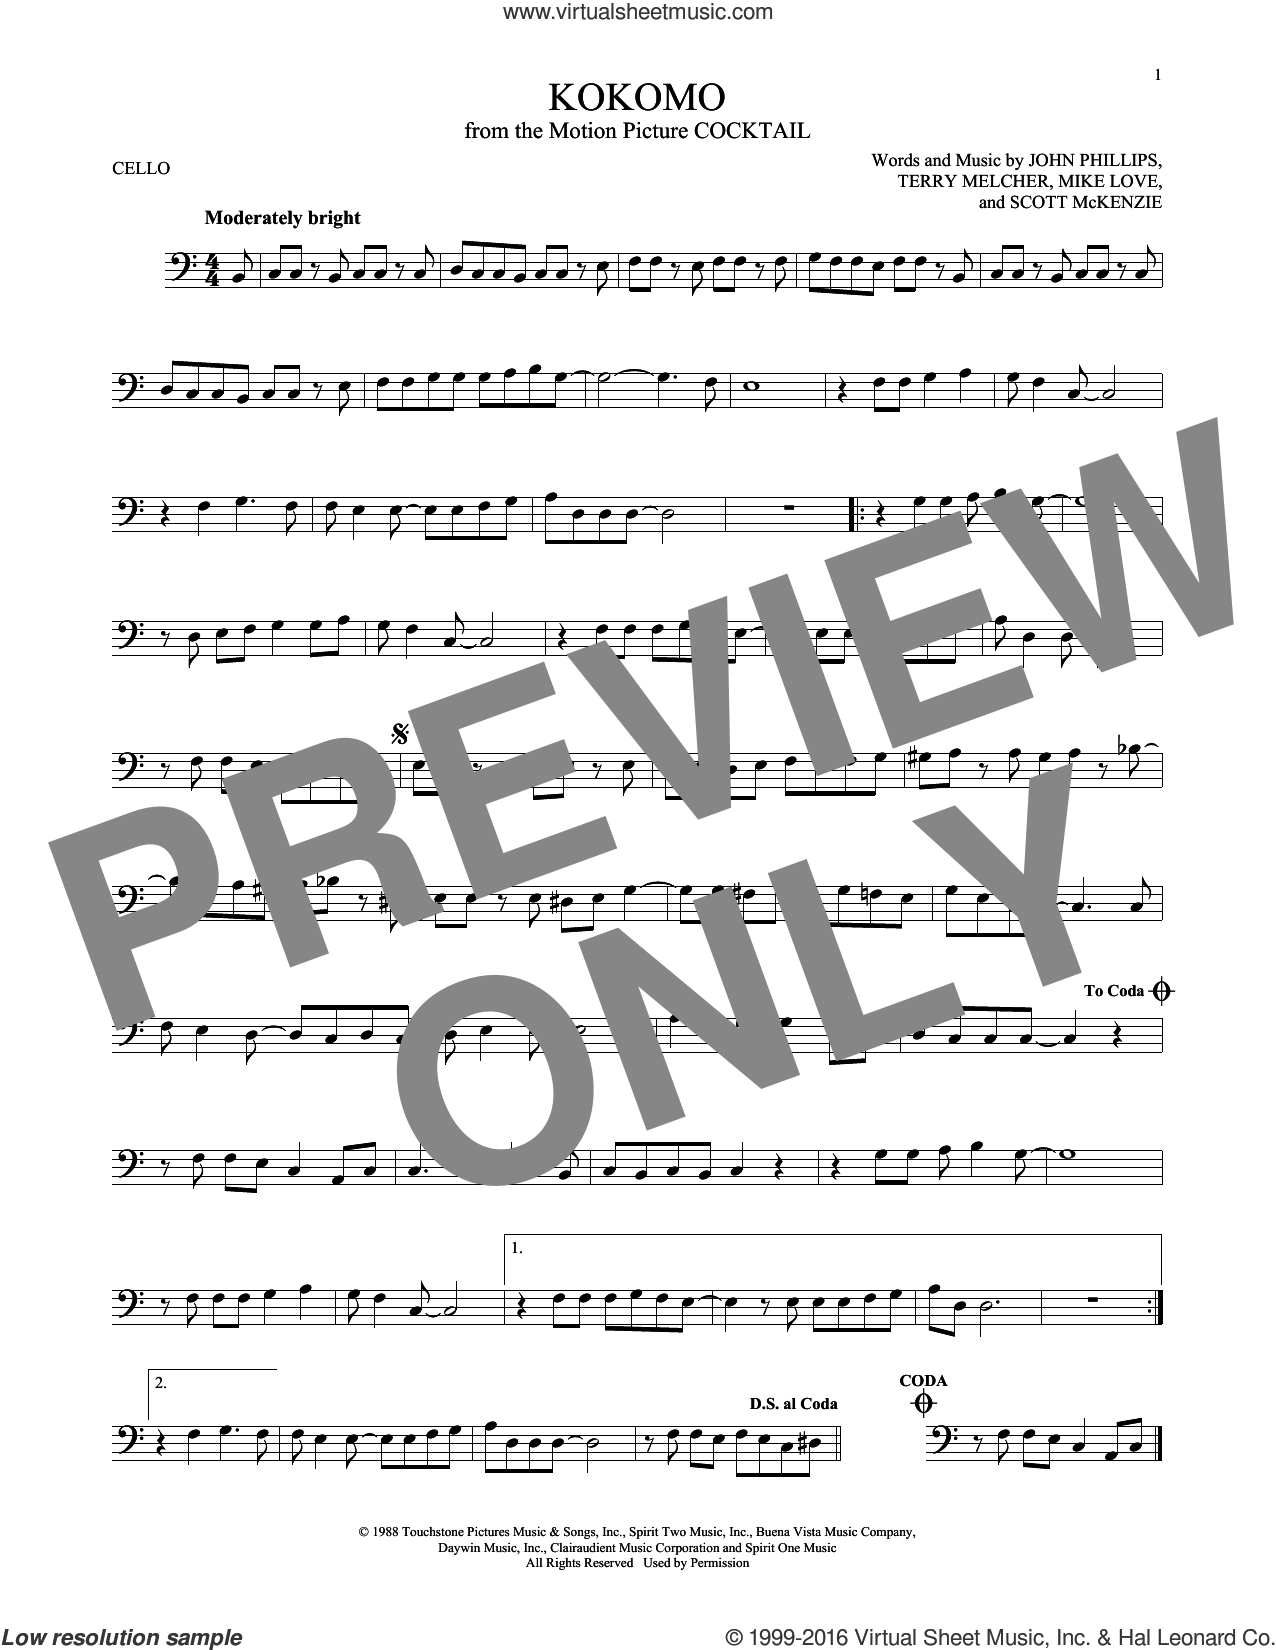 Kokomo sheet music for cello solo by The Beach Boys, John Phillips, Mike Love, Scott McKenzie and Terry Melcher, intermediate skill level